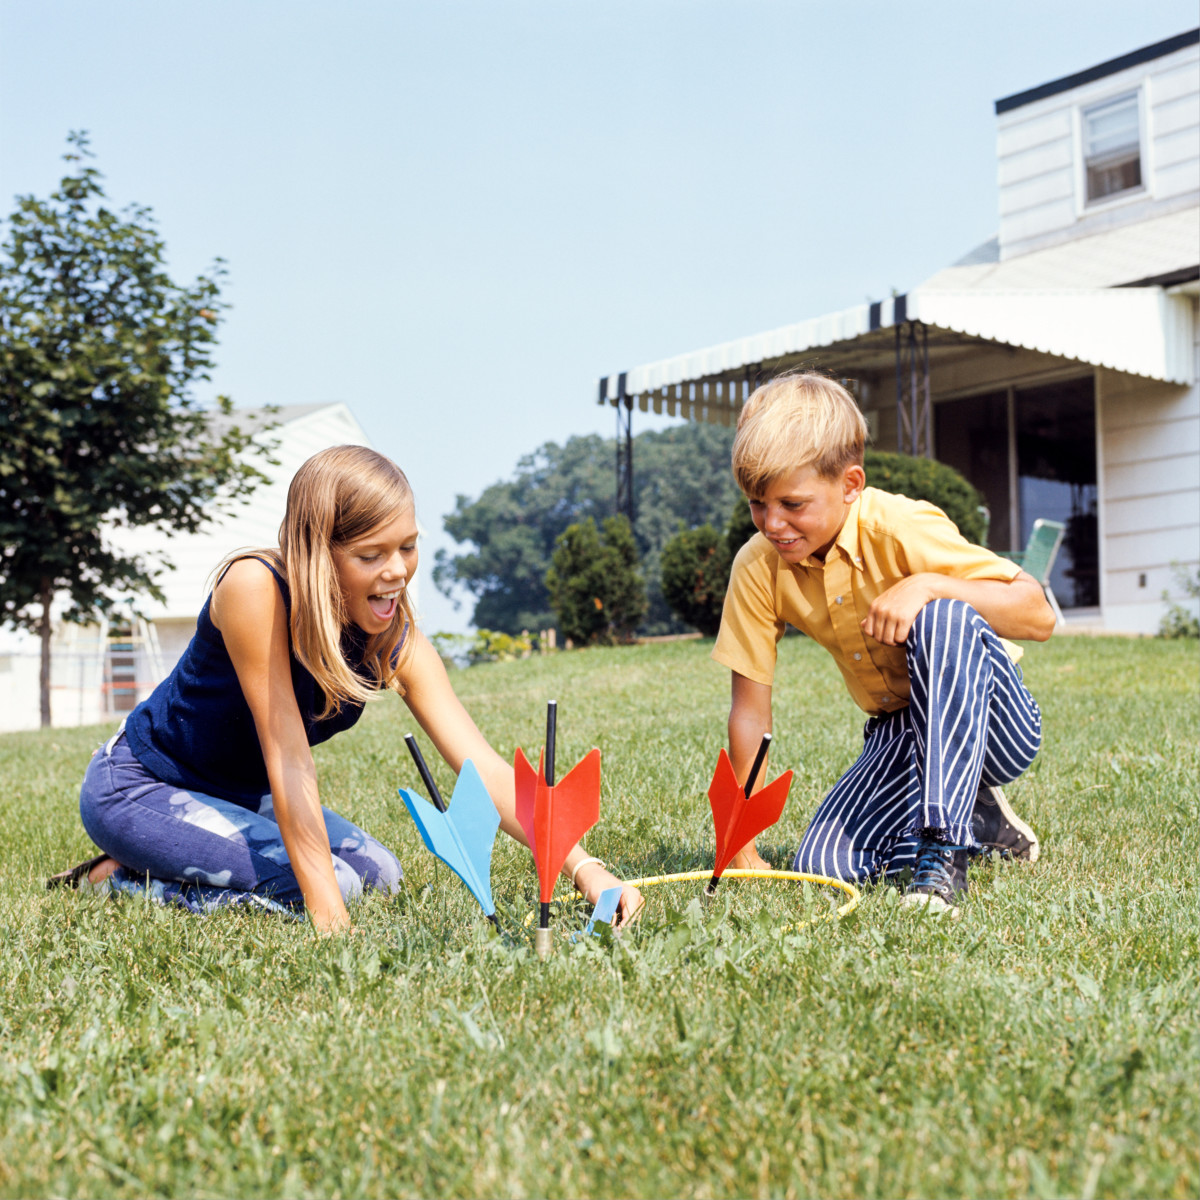 """Jarts, """"an outdoor game for the family,"""" was by 1970 """"an outdoor game for adults."""""""